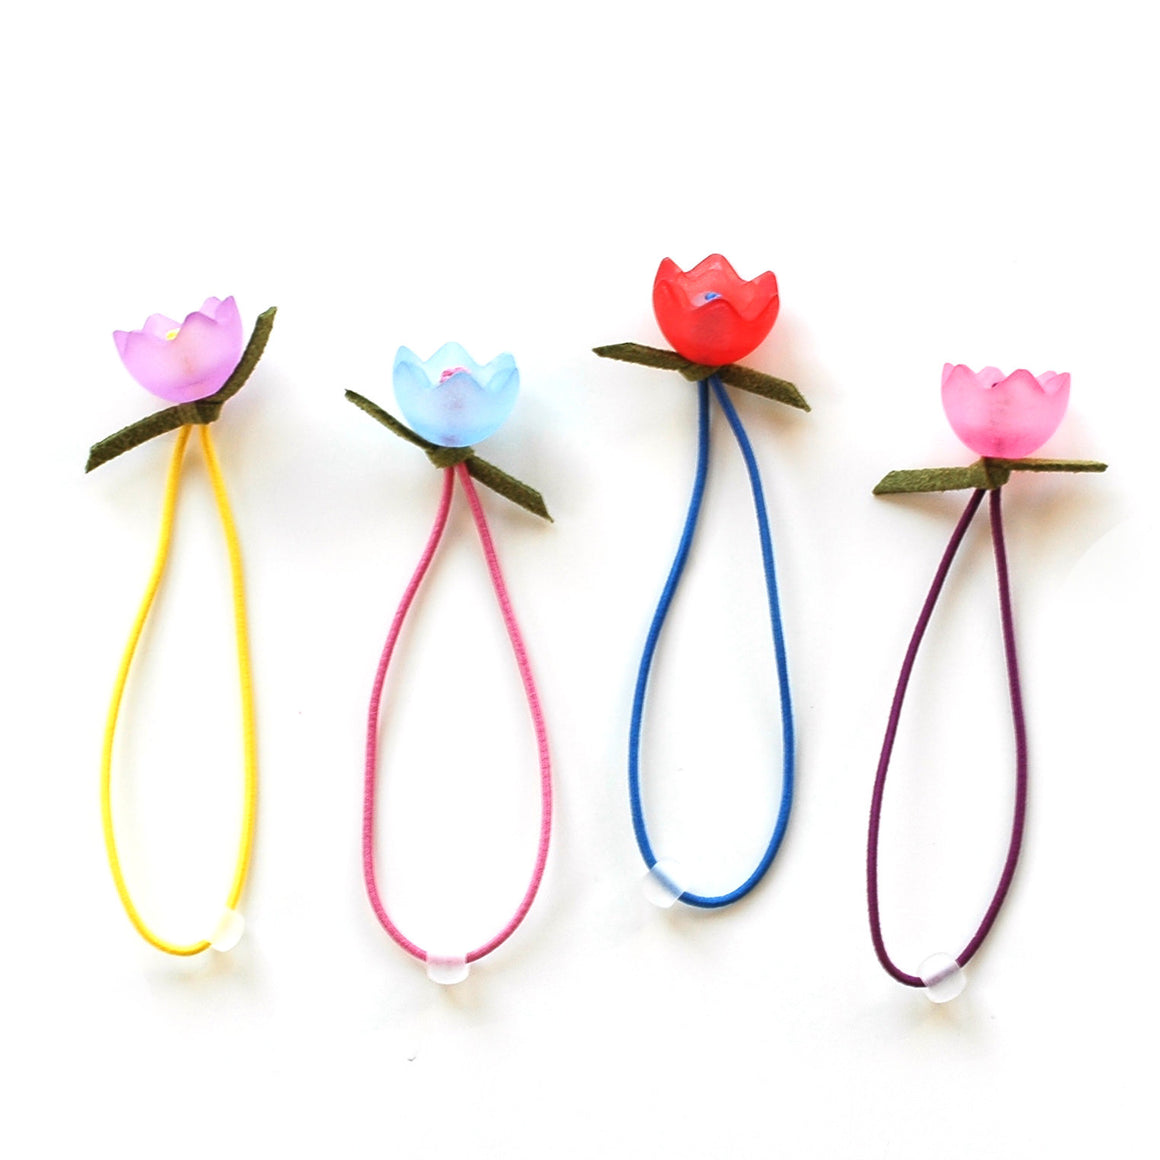 tulip hair ties // hello shiso hair accessories for girls